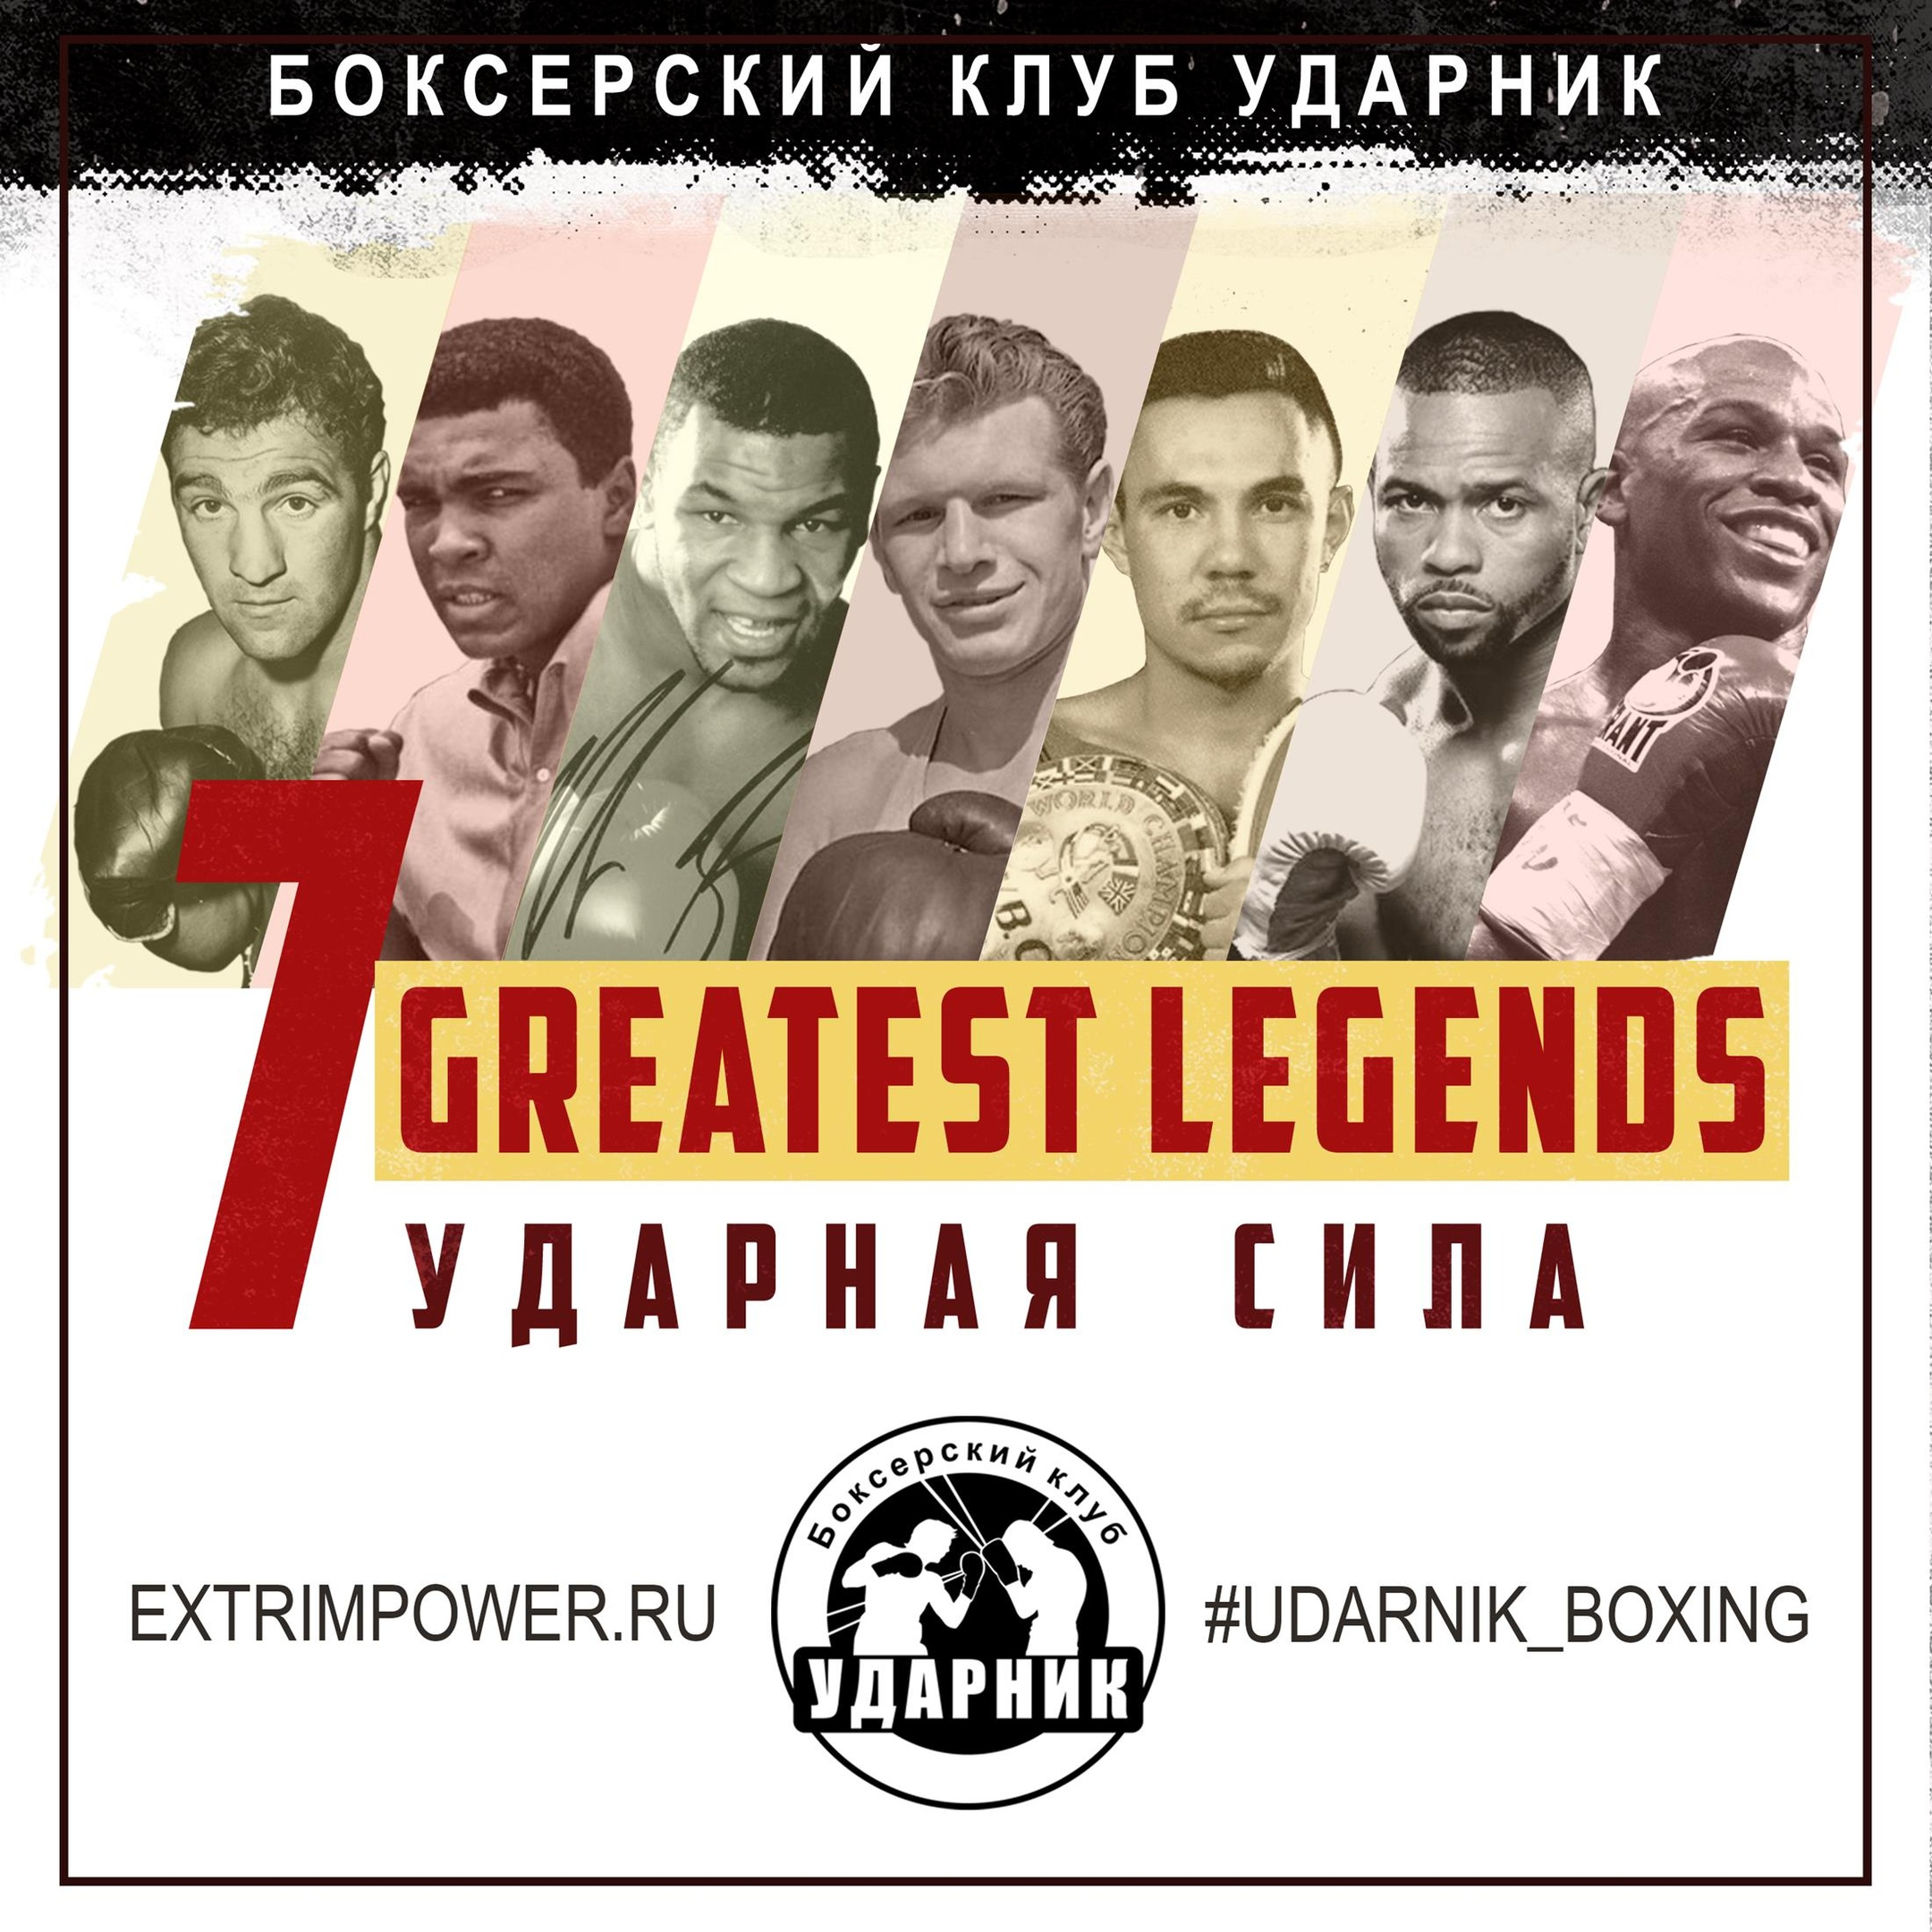 Состав пар. Турнир по боксу Ударная Сила 7 Legends на Кубок Константина Цзю в БК Ударник 26 января 2019 года.